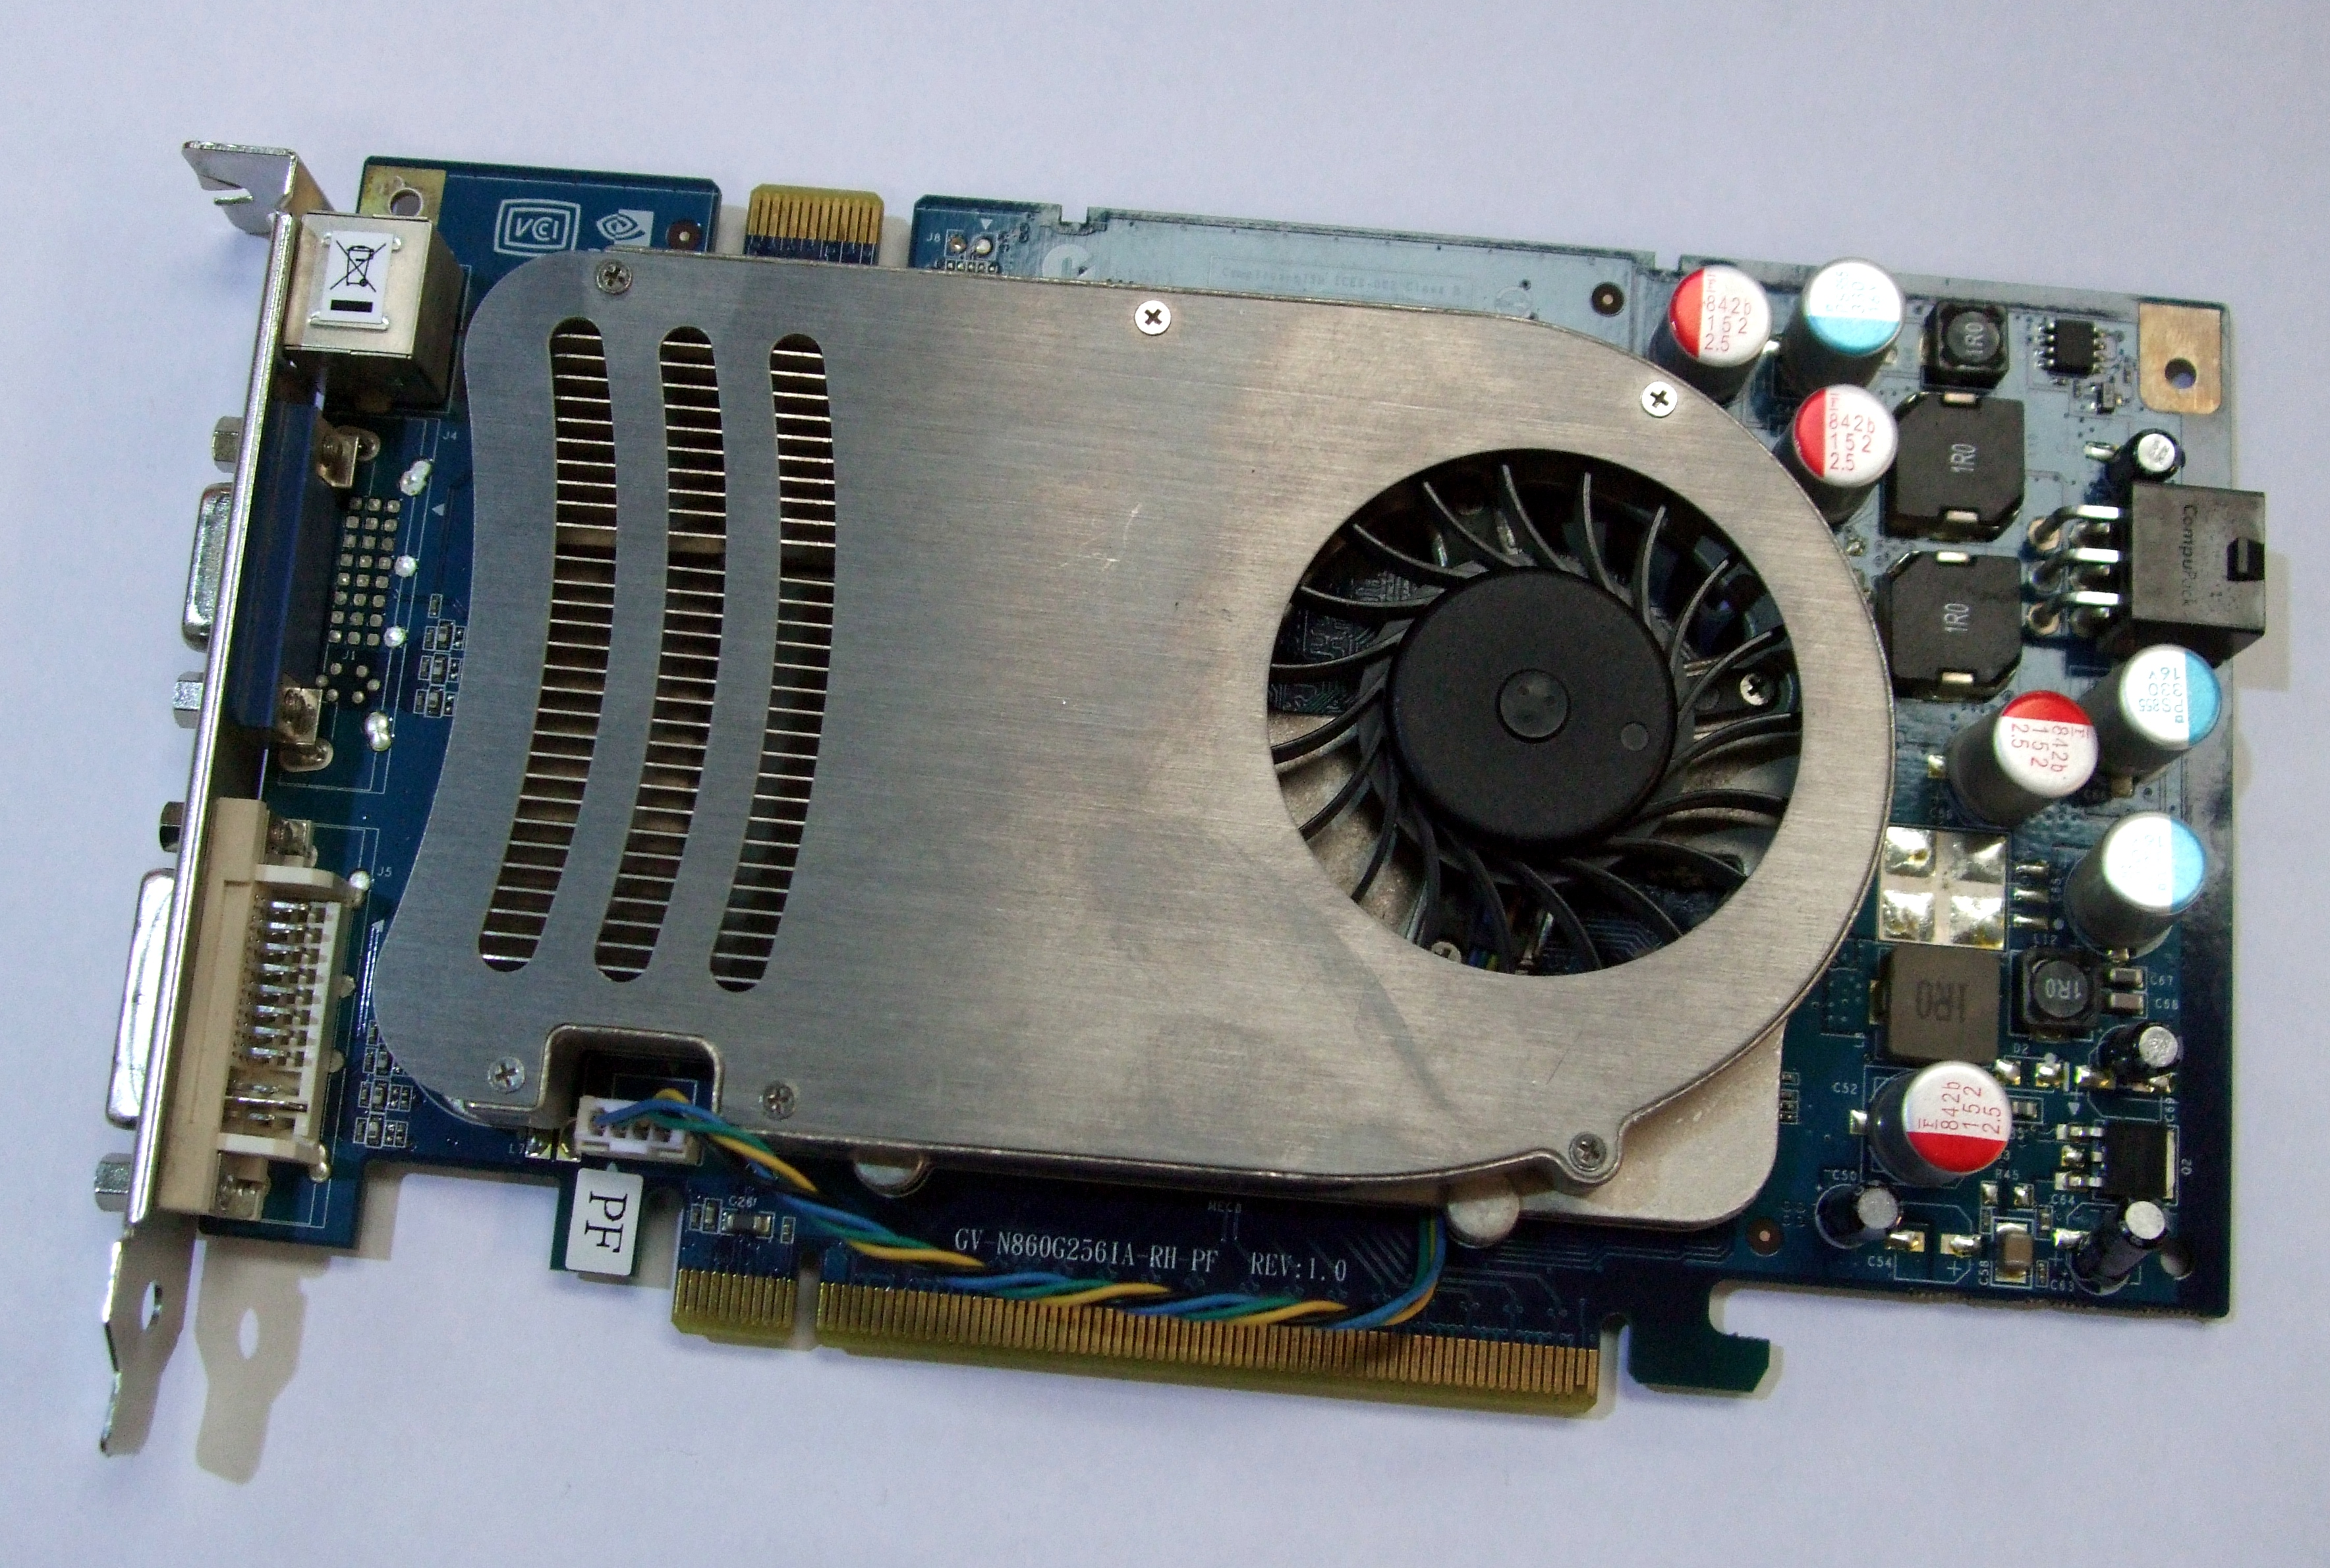 GV-N860G256IA-RH-PF Gigabyte Nvidia Geforce 8600GTS 256MB PCIE Graphics Card Enlarged Preview